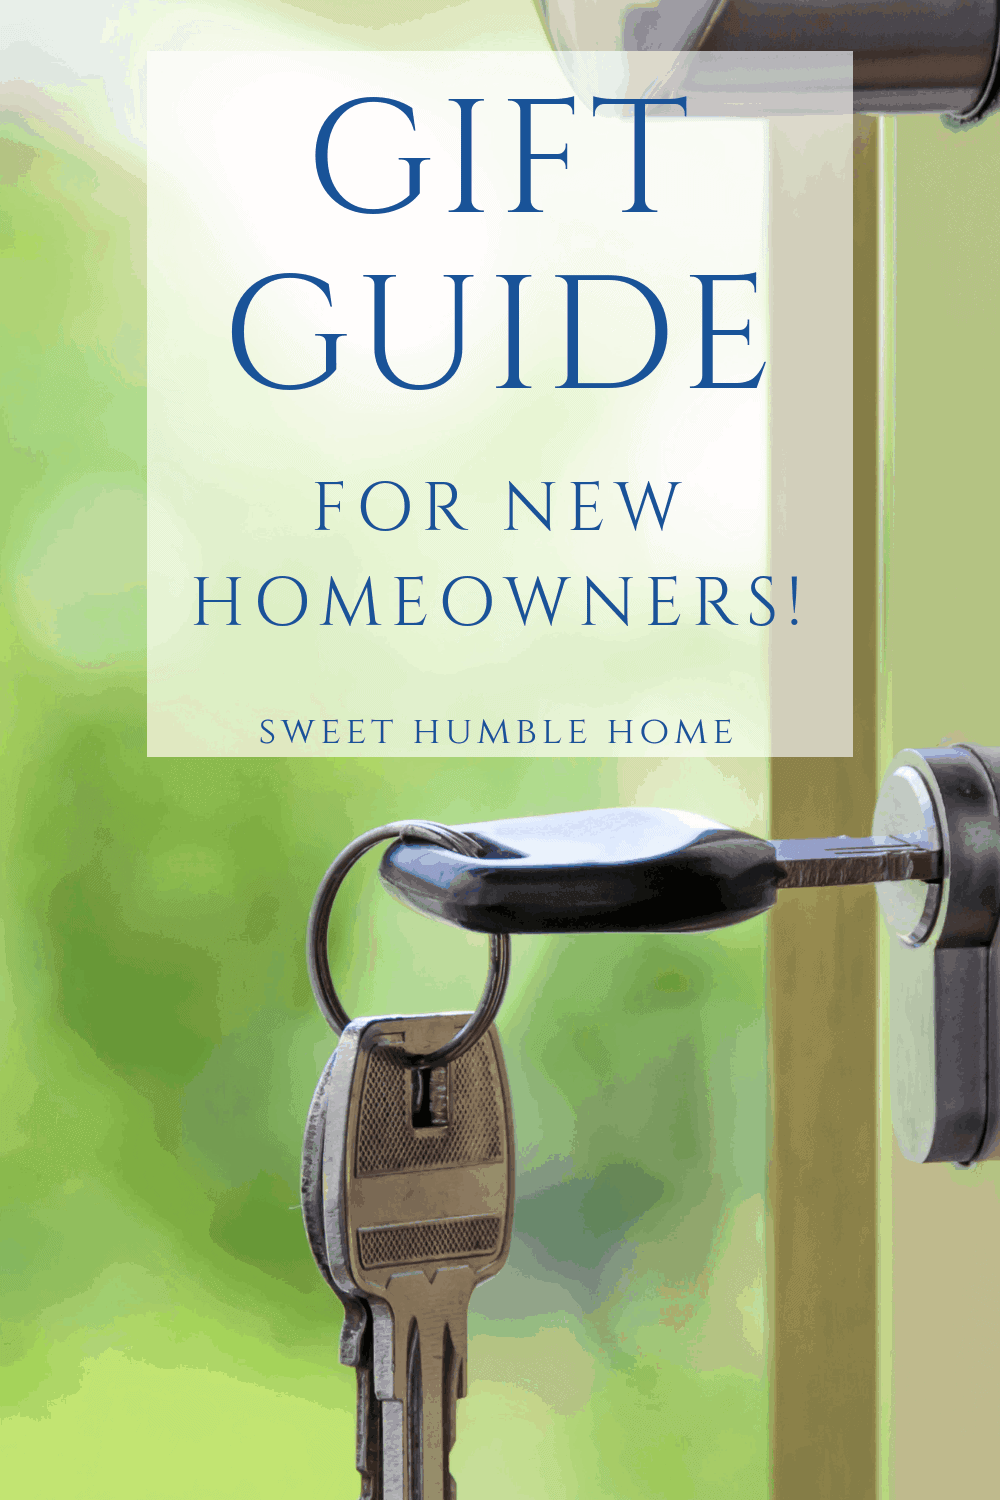 Gift Guide for New Homeowners - Sweet Humble Home